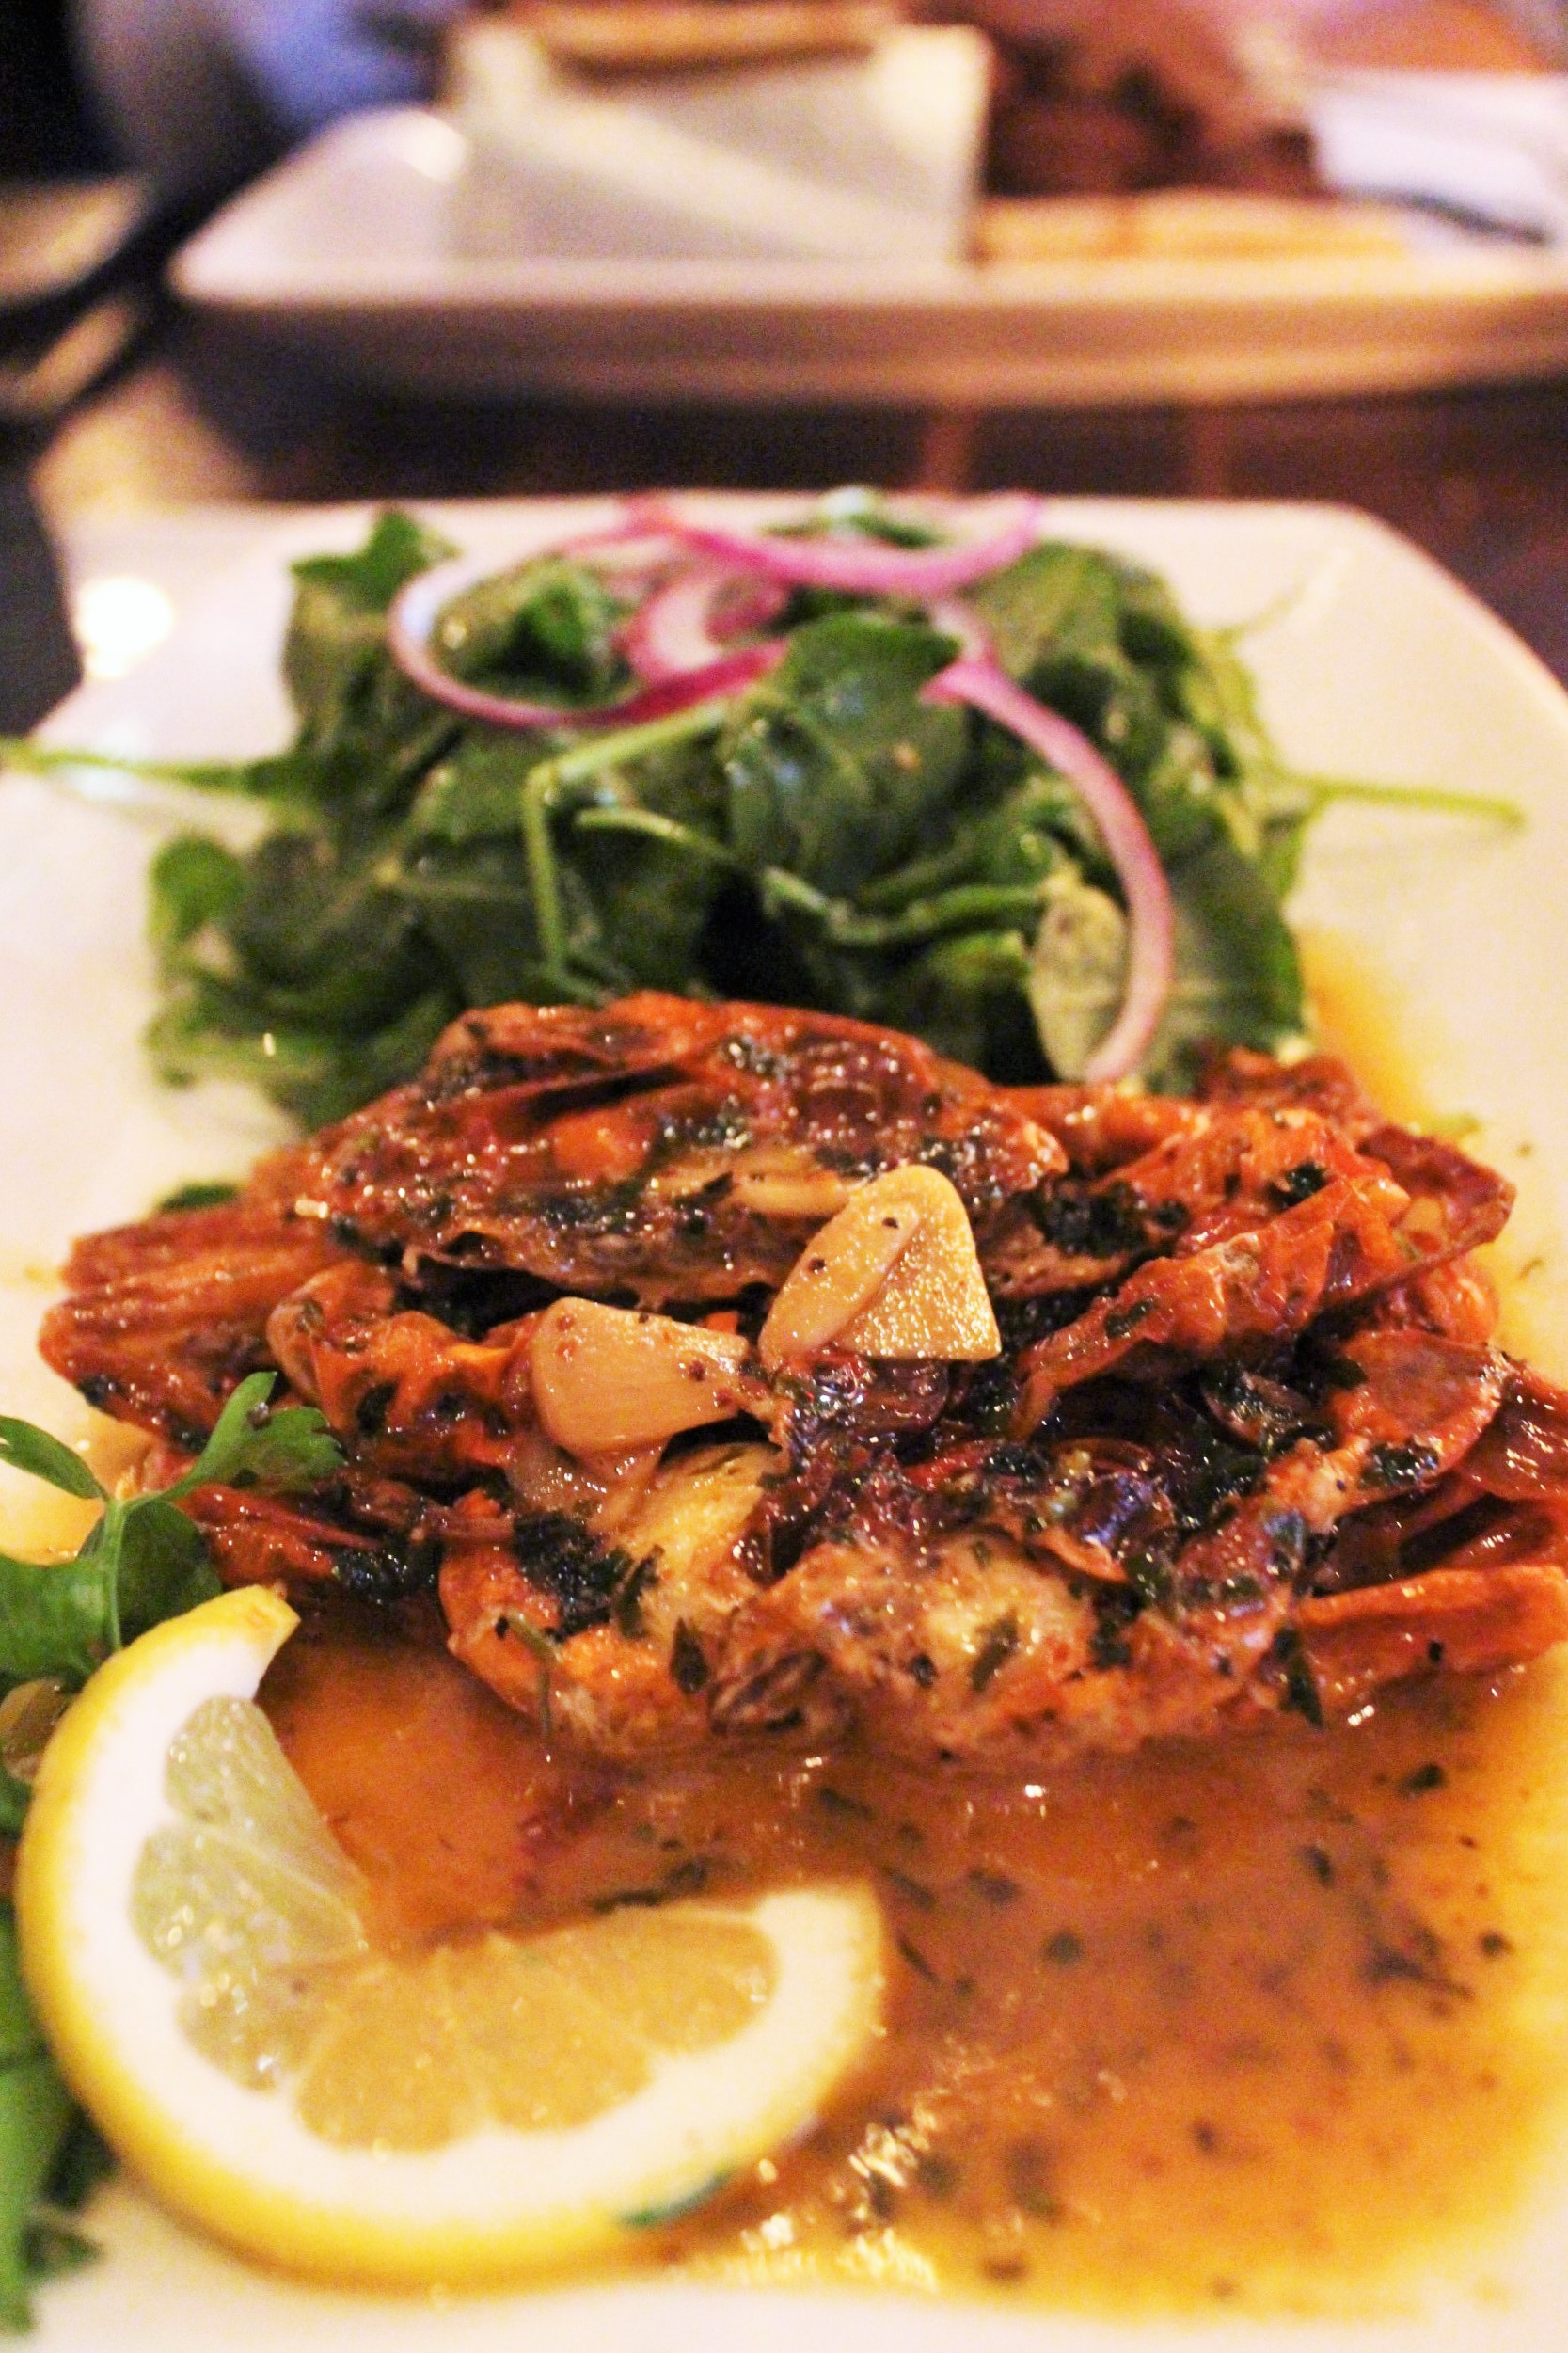 Soft Shell Crab with Butter, Wine, Arugula at Balzem